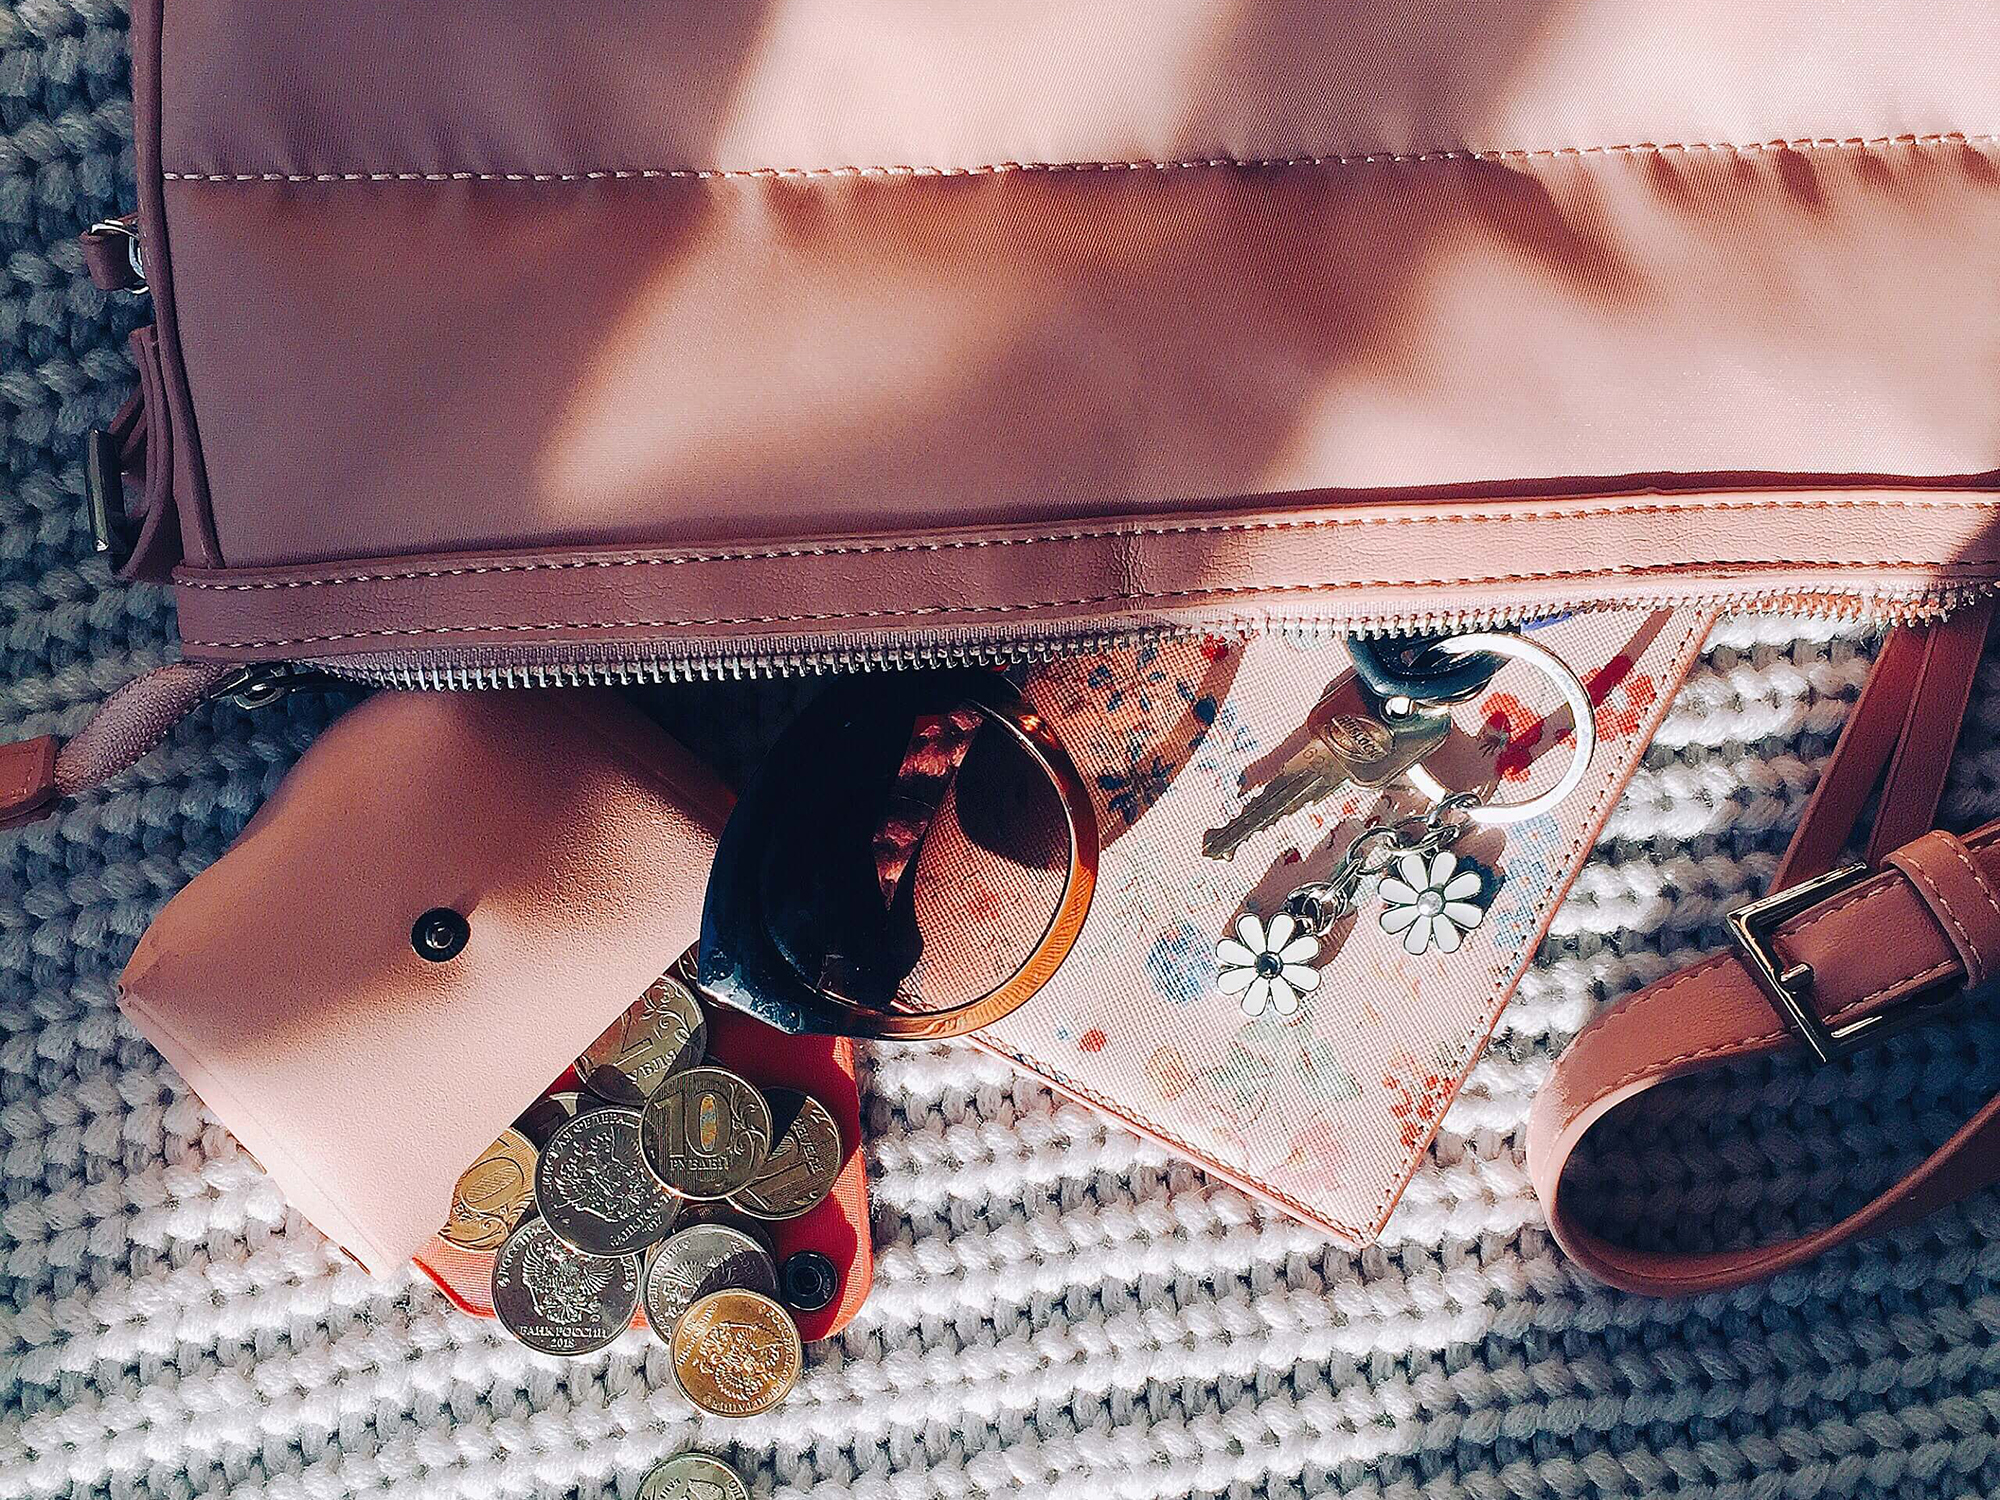 Pink handbag and wallet, coins are laid out next to a coin purse.